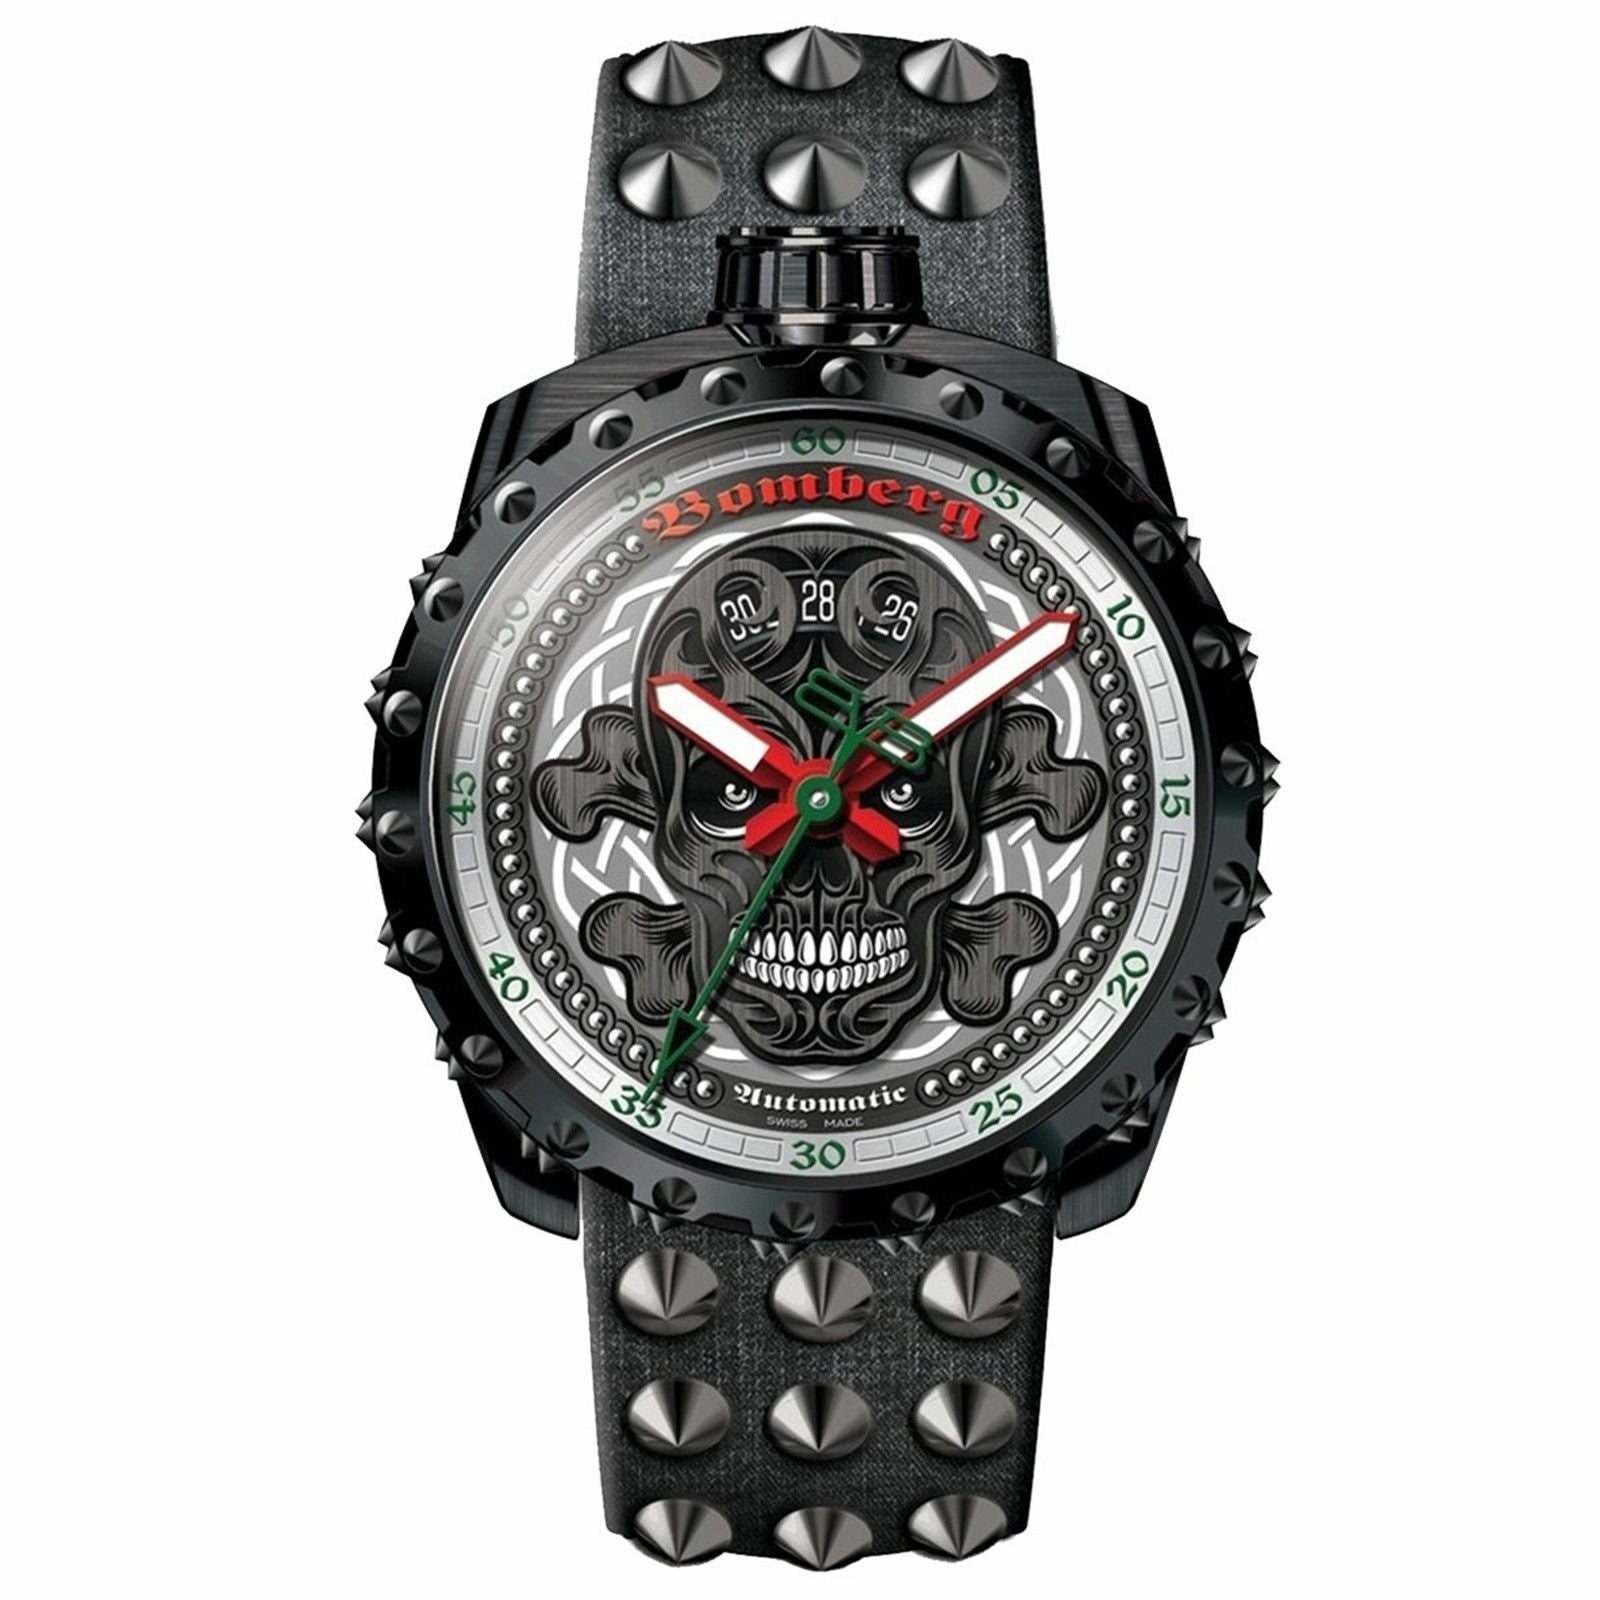 Bomberg BOLT-68 Punk - Watches & Crystals